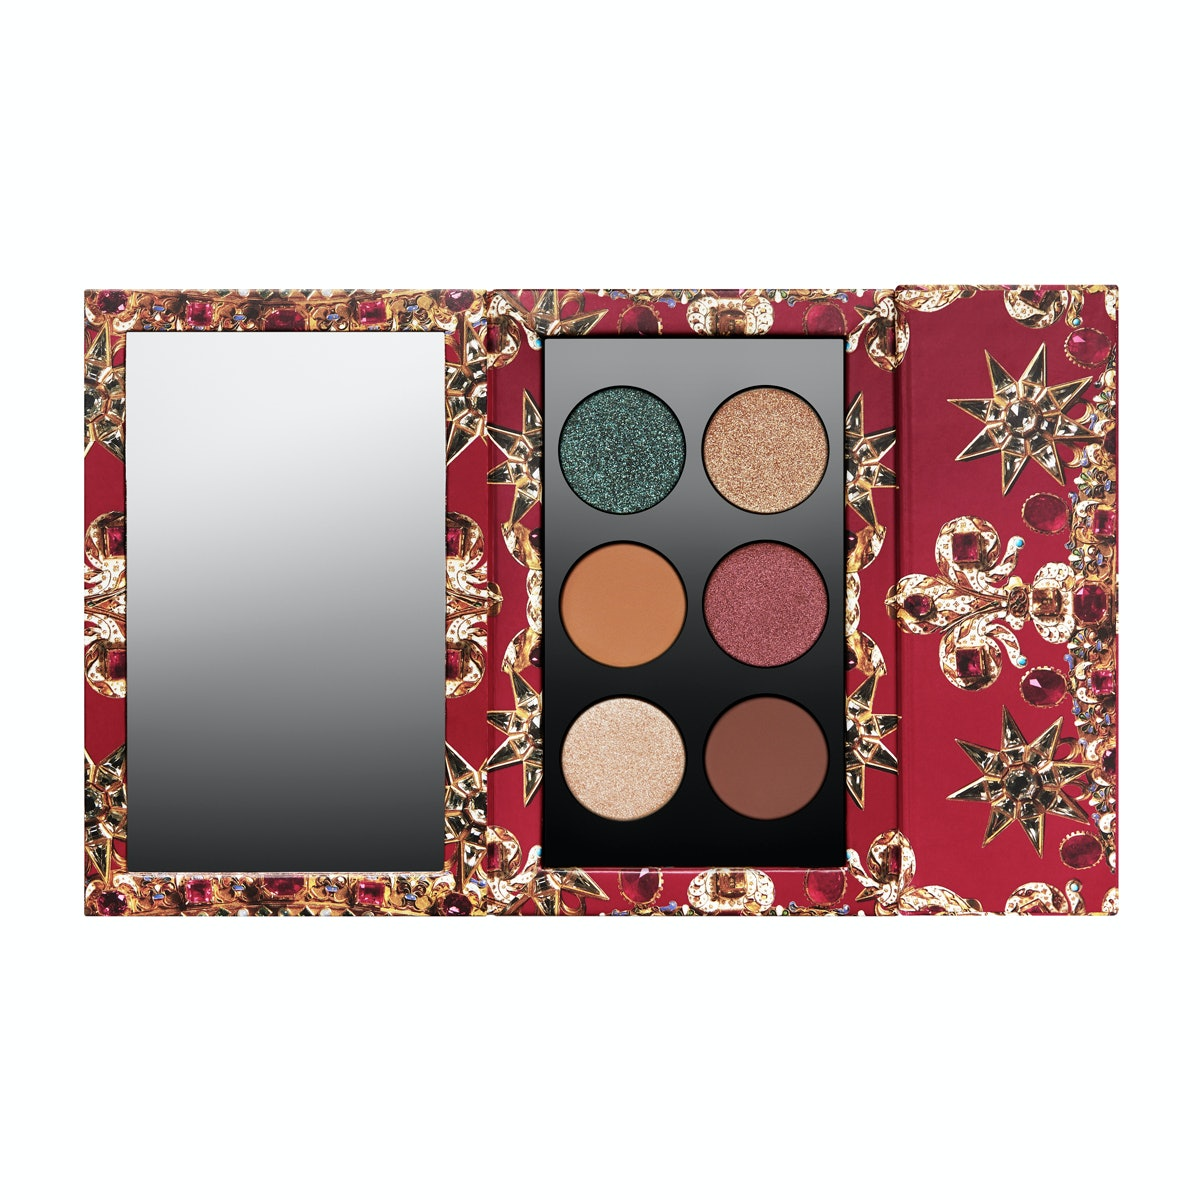 ... eye makeup makeup makeup in stan · pat mcgrath s 2018 holiday collection offers a haute take on your past favorite products ...